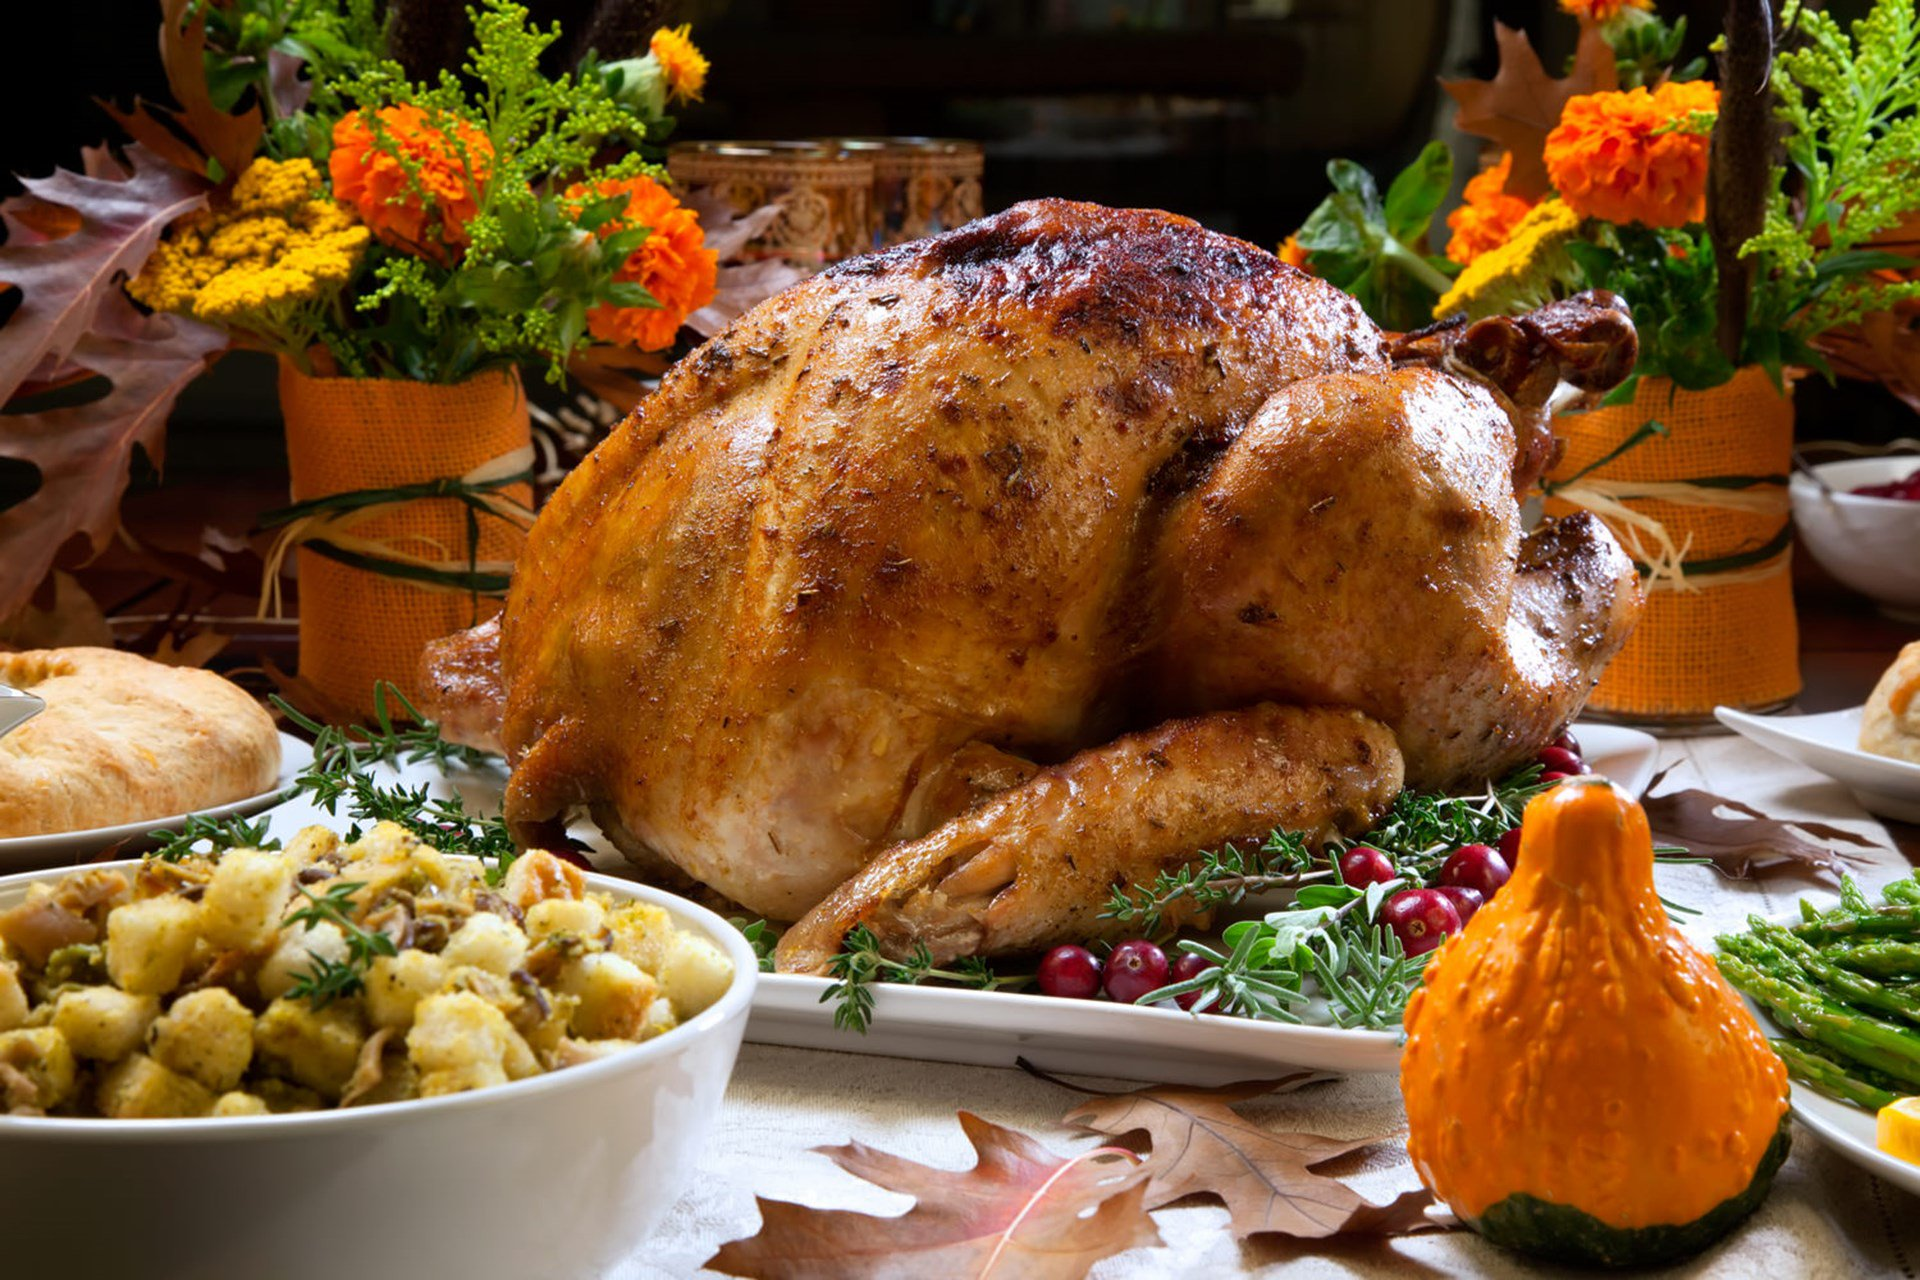 12 Ways Alexa Can Help You This Thanksgiving